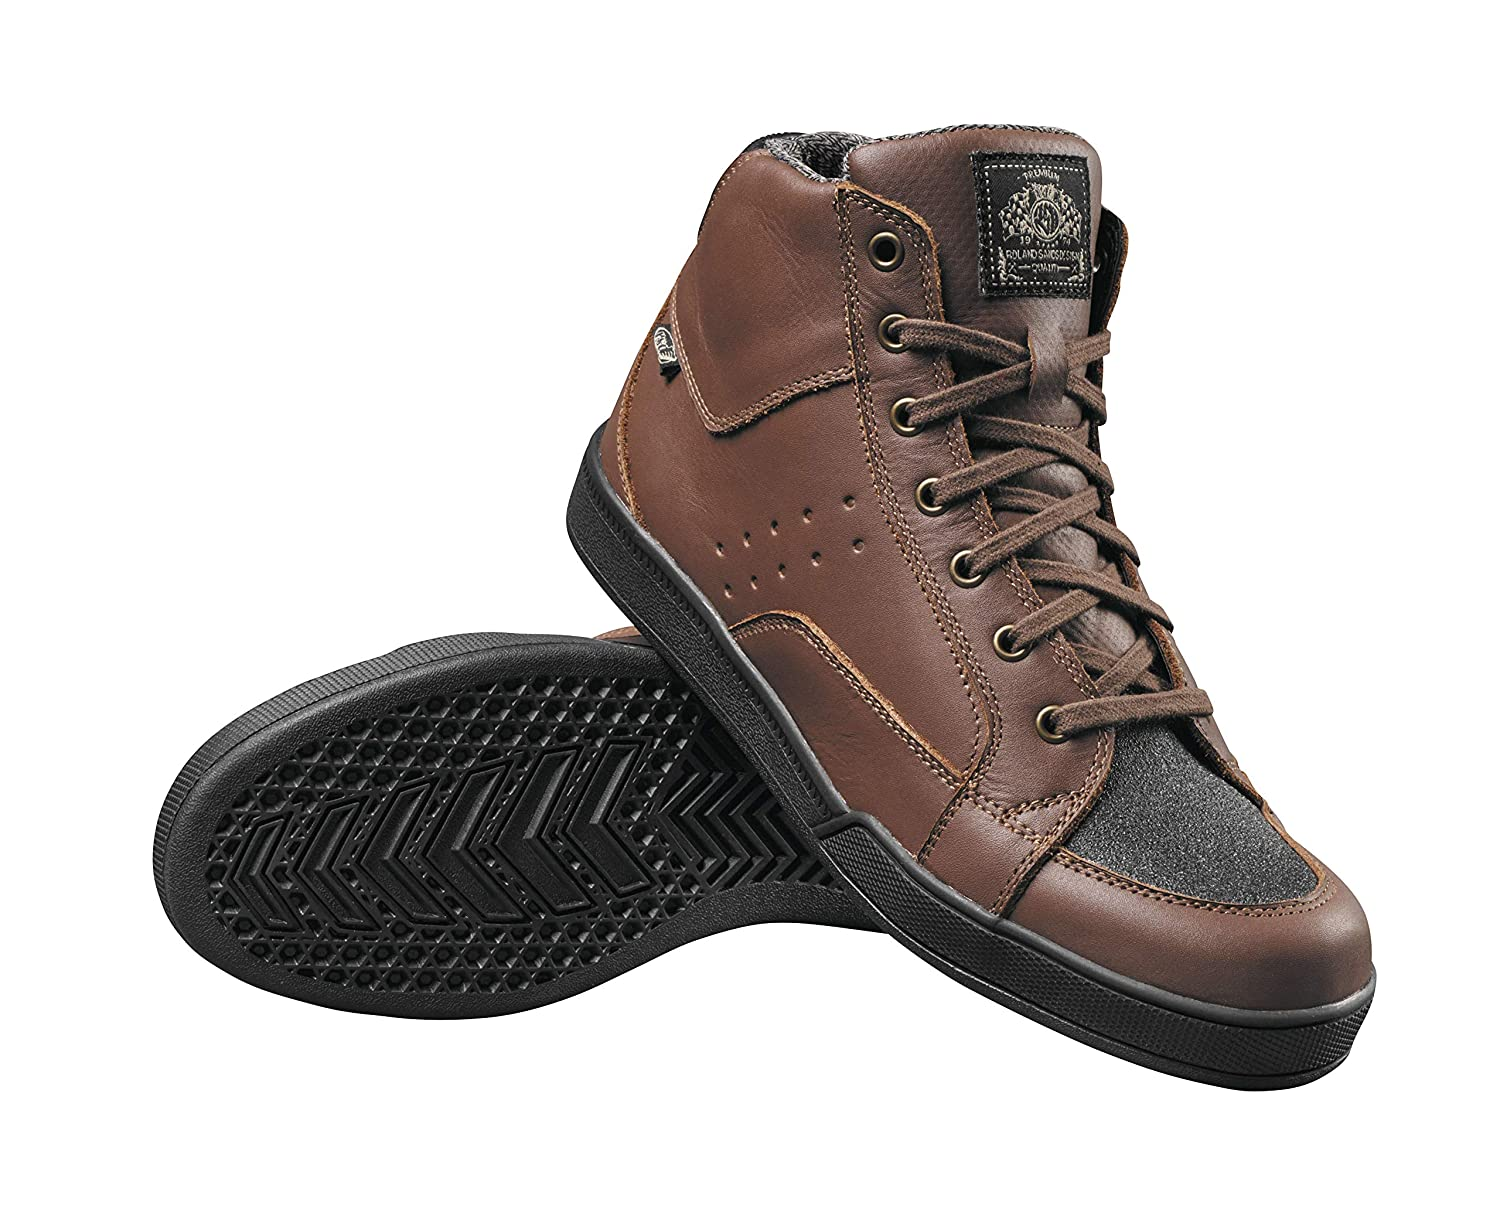 Tobacco 9 Roland Sands Design Fresno Mens Street Motorcycle Shoes